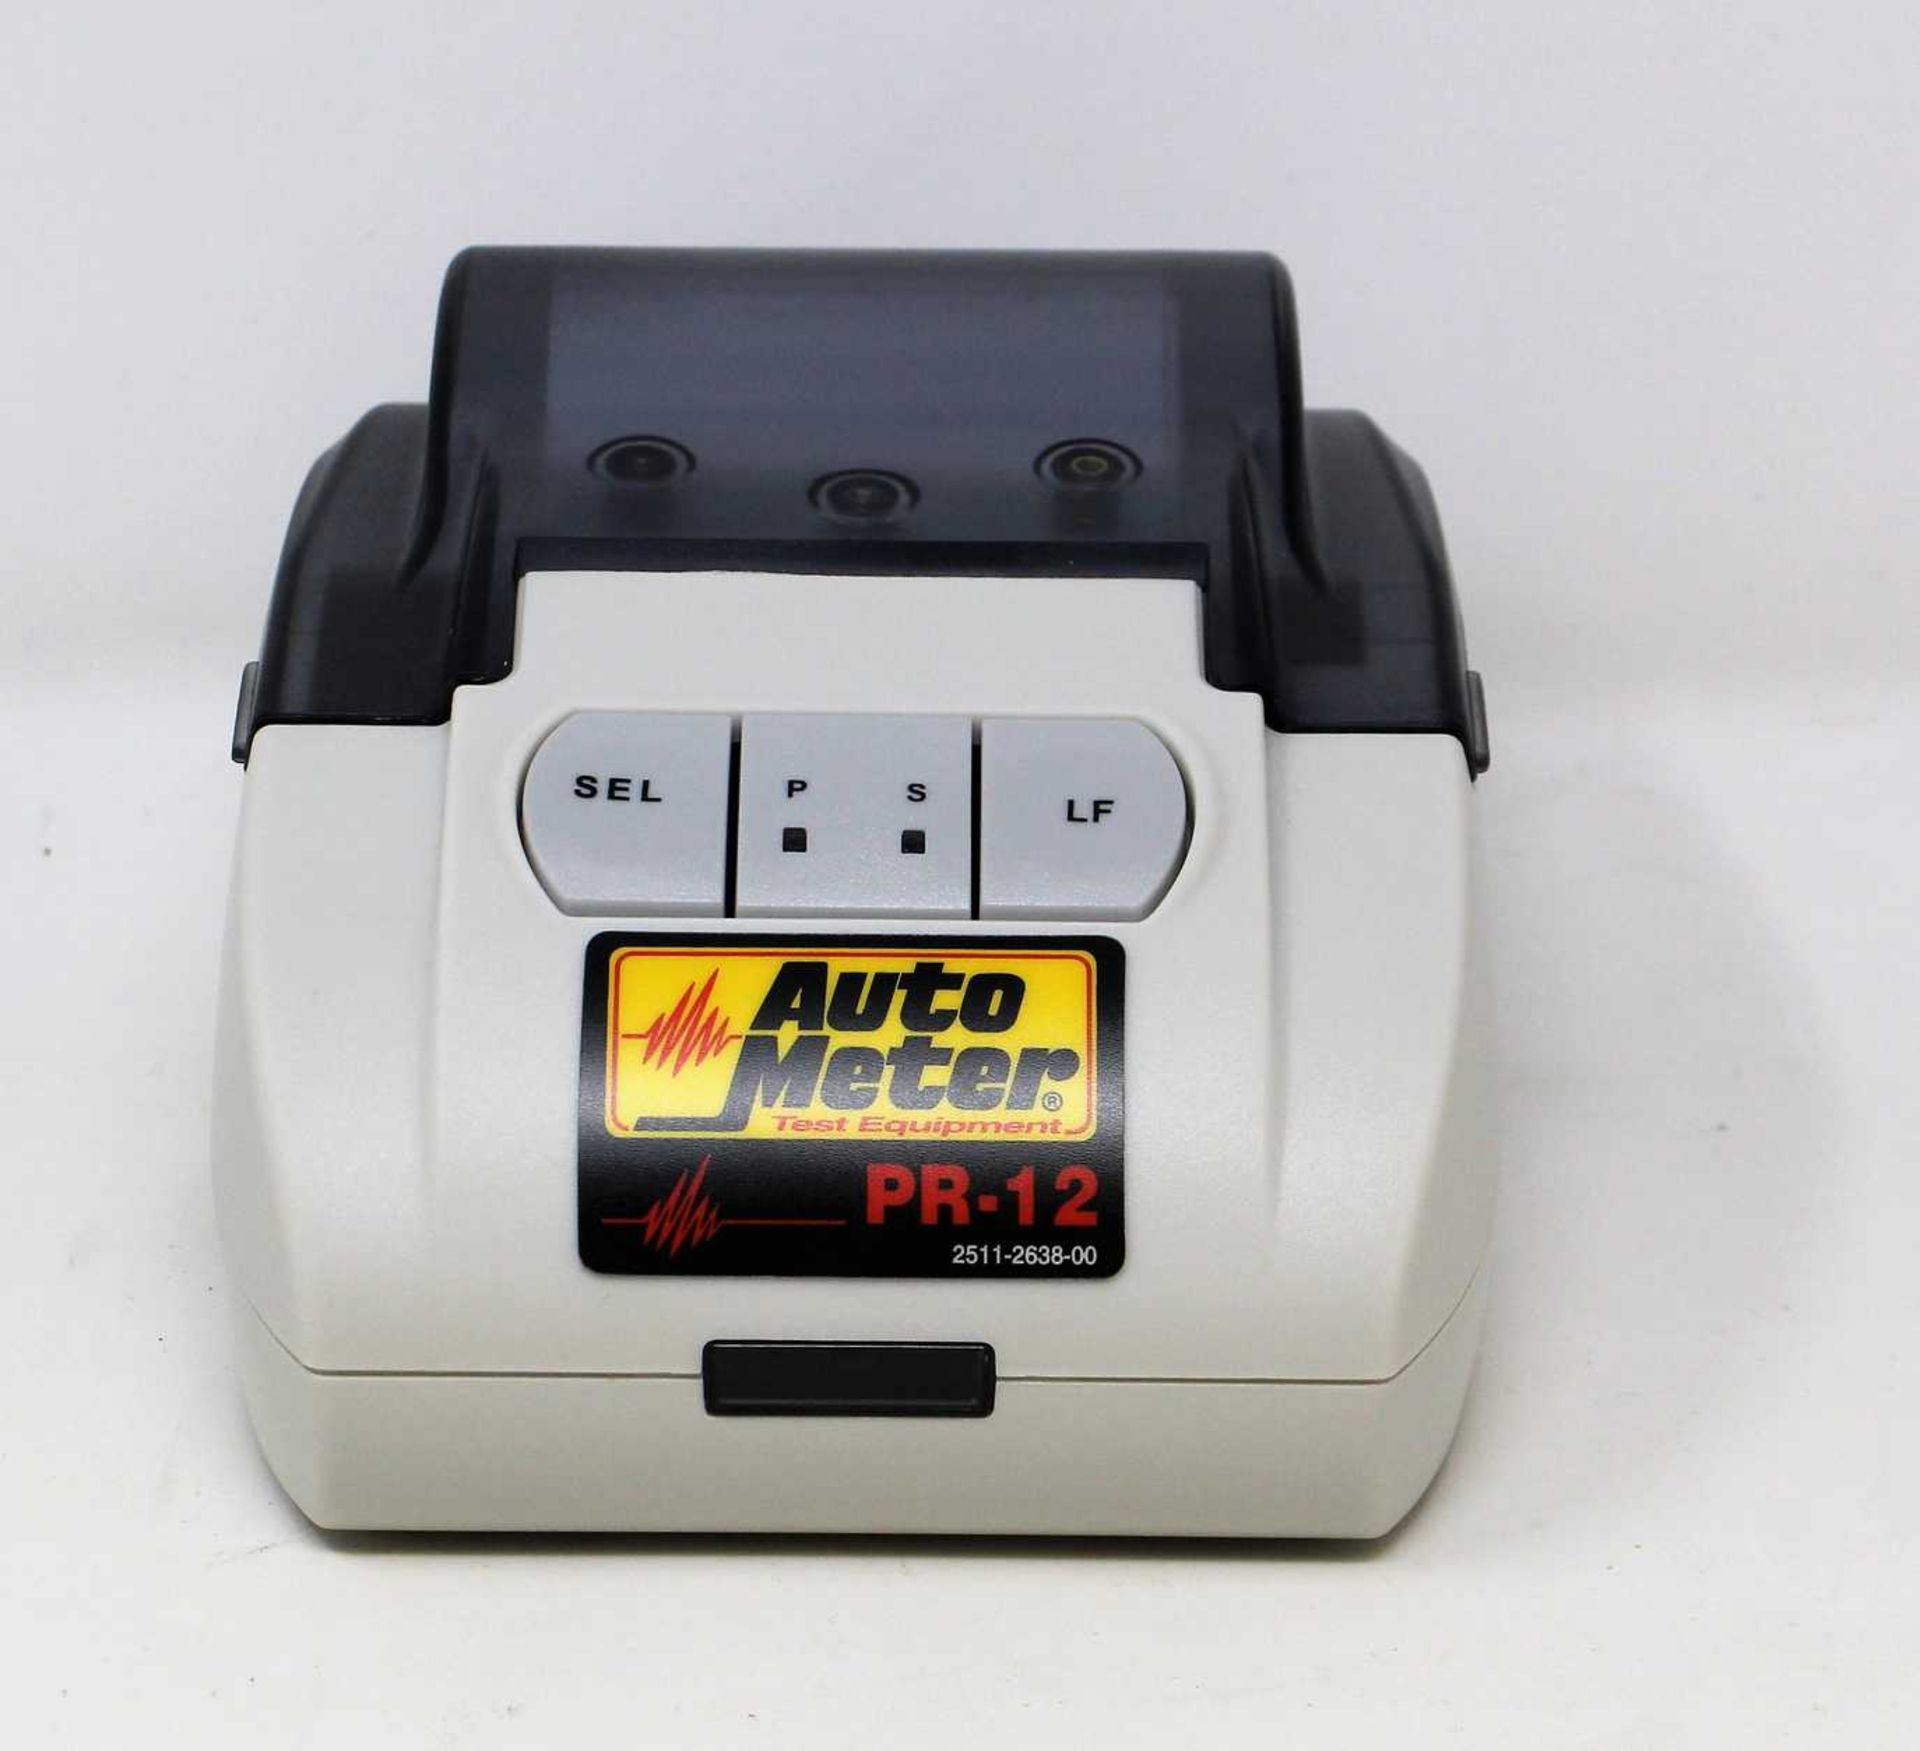 A boxed as new Auto Meter PR-12 Infrared External Printer (UK plug adaptor required).